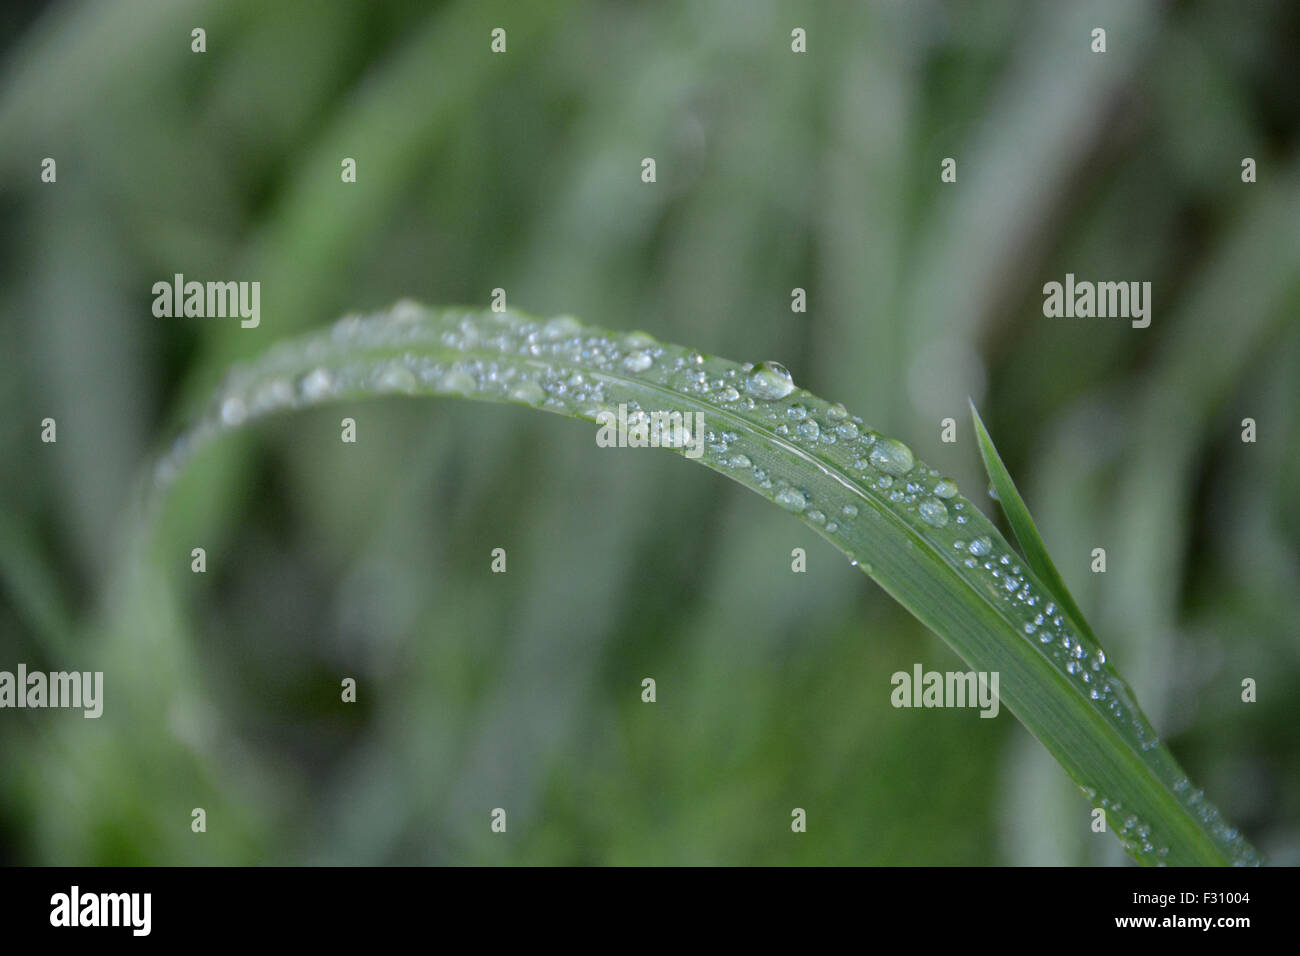 Blade of grass with dew drops on it - Stock Image